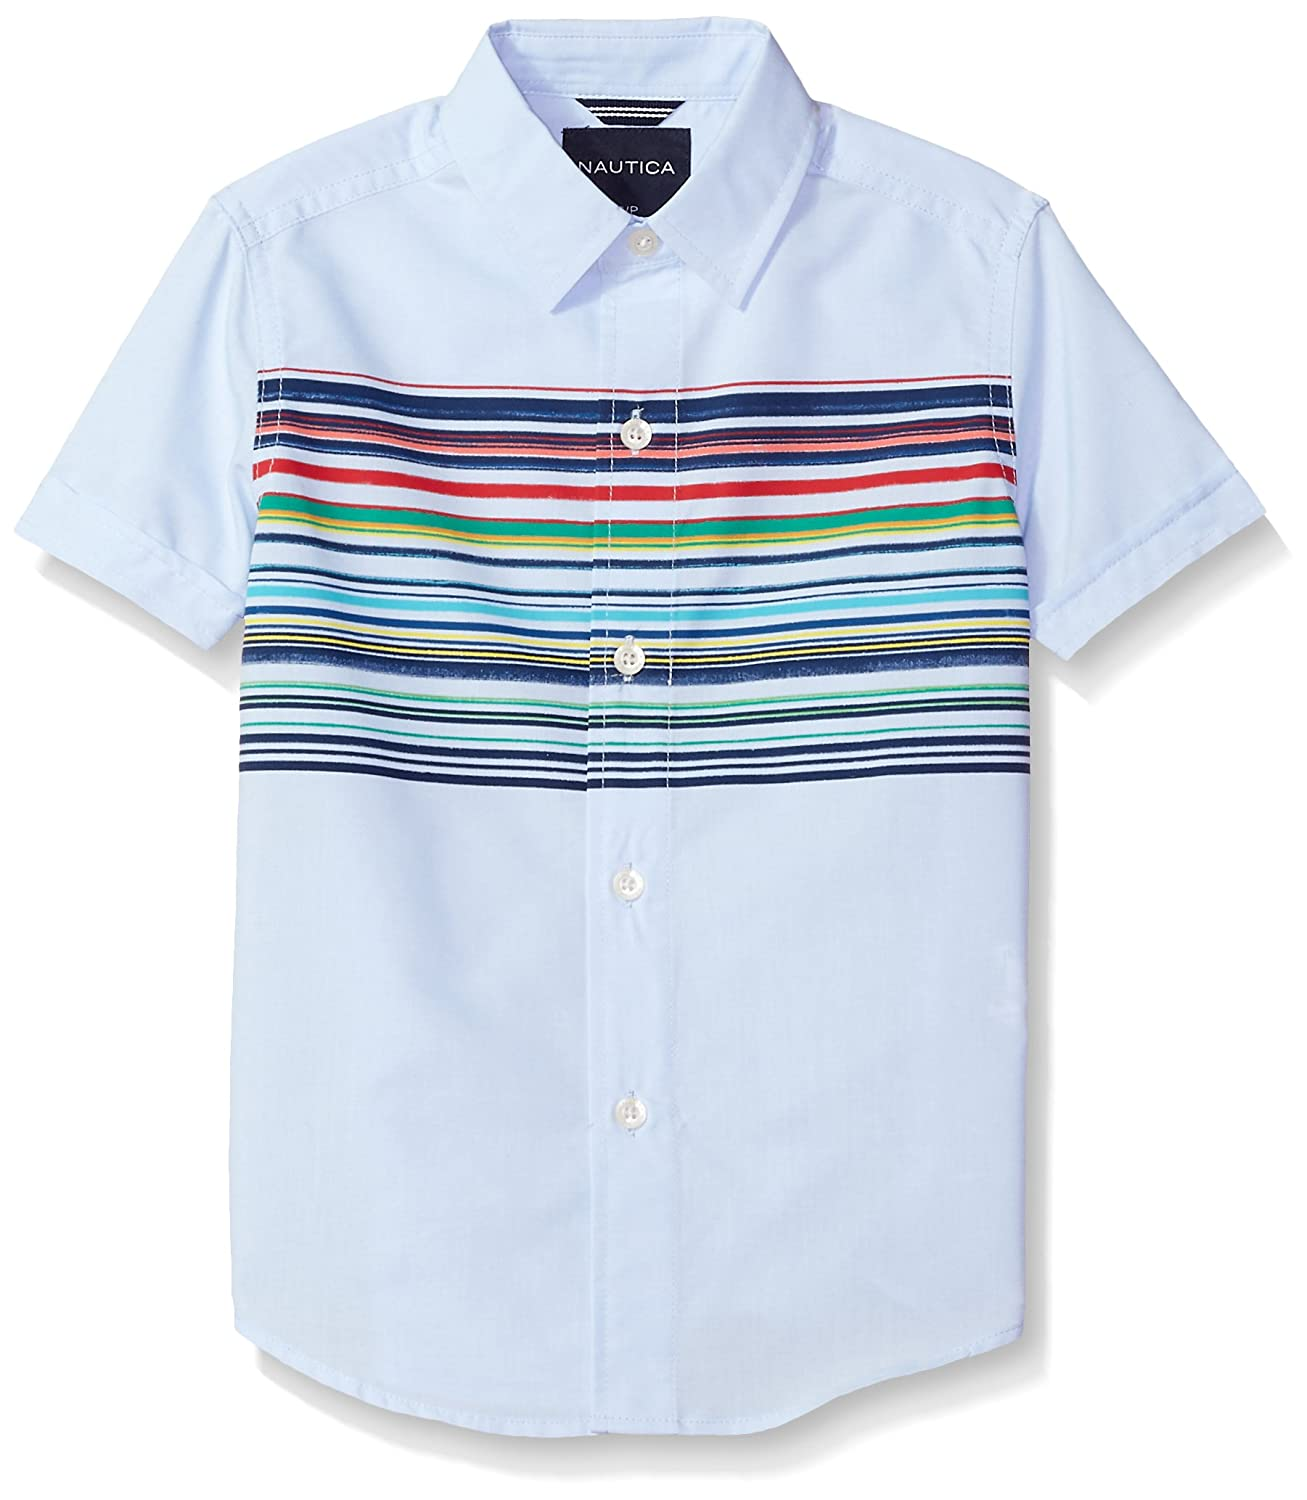 Nautica Boys Short Sleeve Printed Button Down Shirt